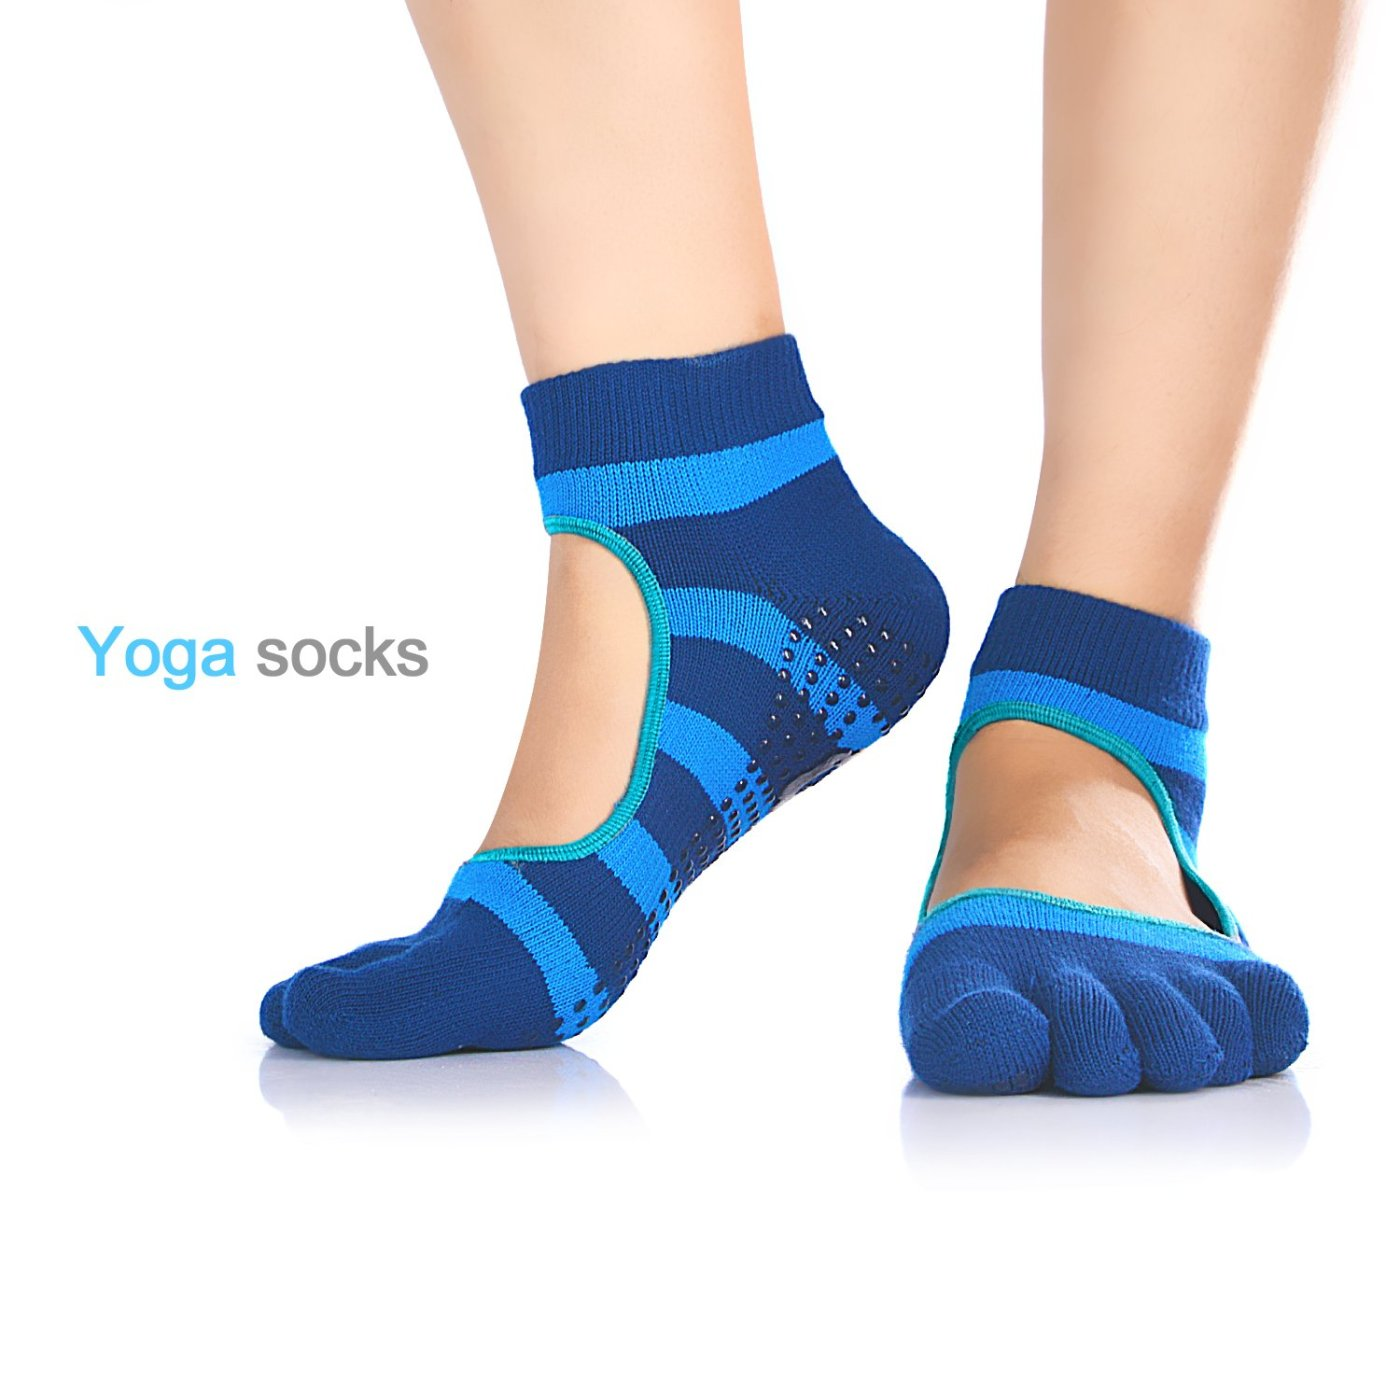 freehawk yoga socks